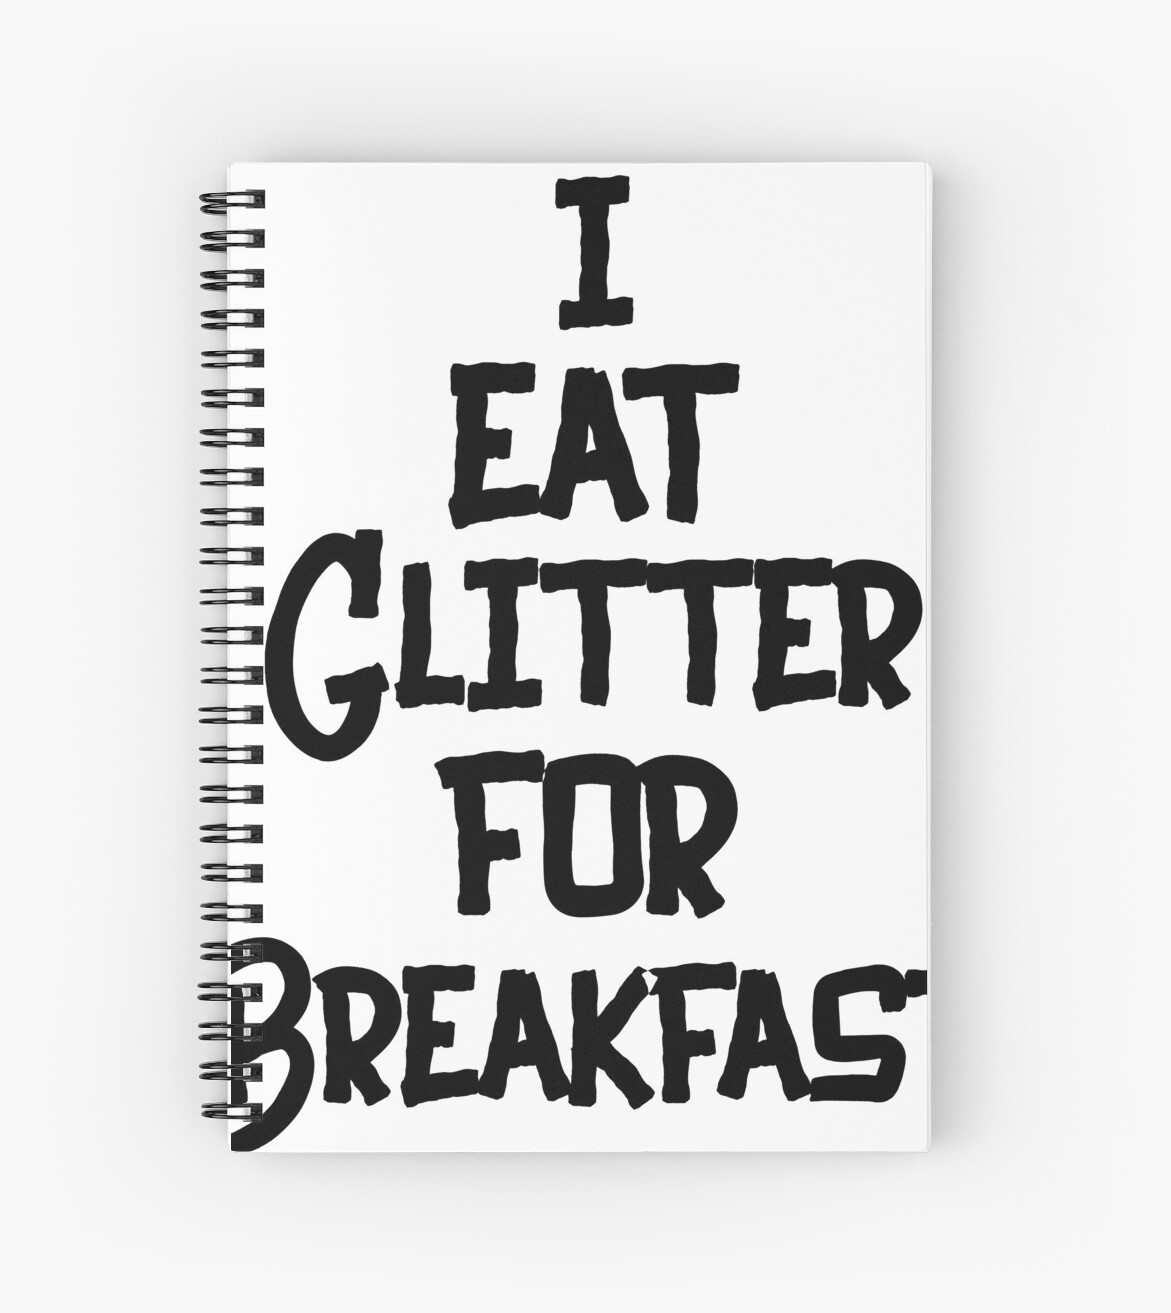 Clothes Quotes I Eat Glitter For Breakfast T Shirt Aesthetic Clothing Hippie Clothes Streetwear Gift For Daughter Inspirational Clothing Quotes Spiral Notebook